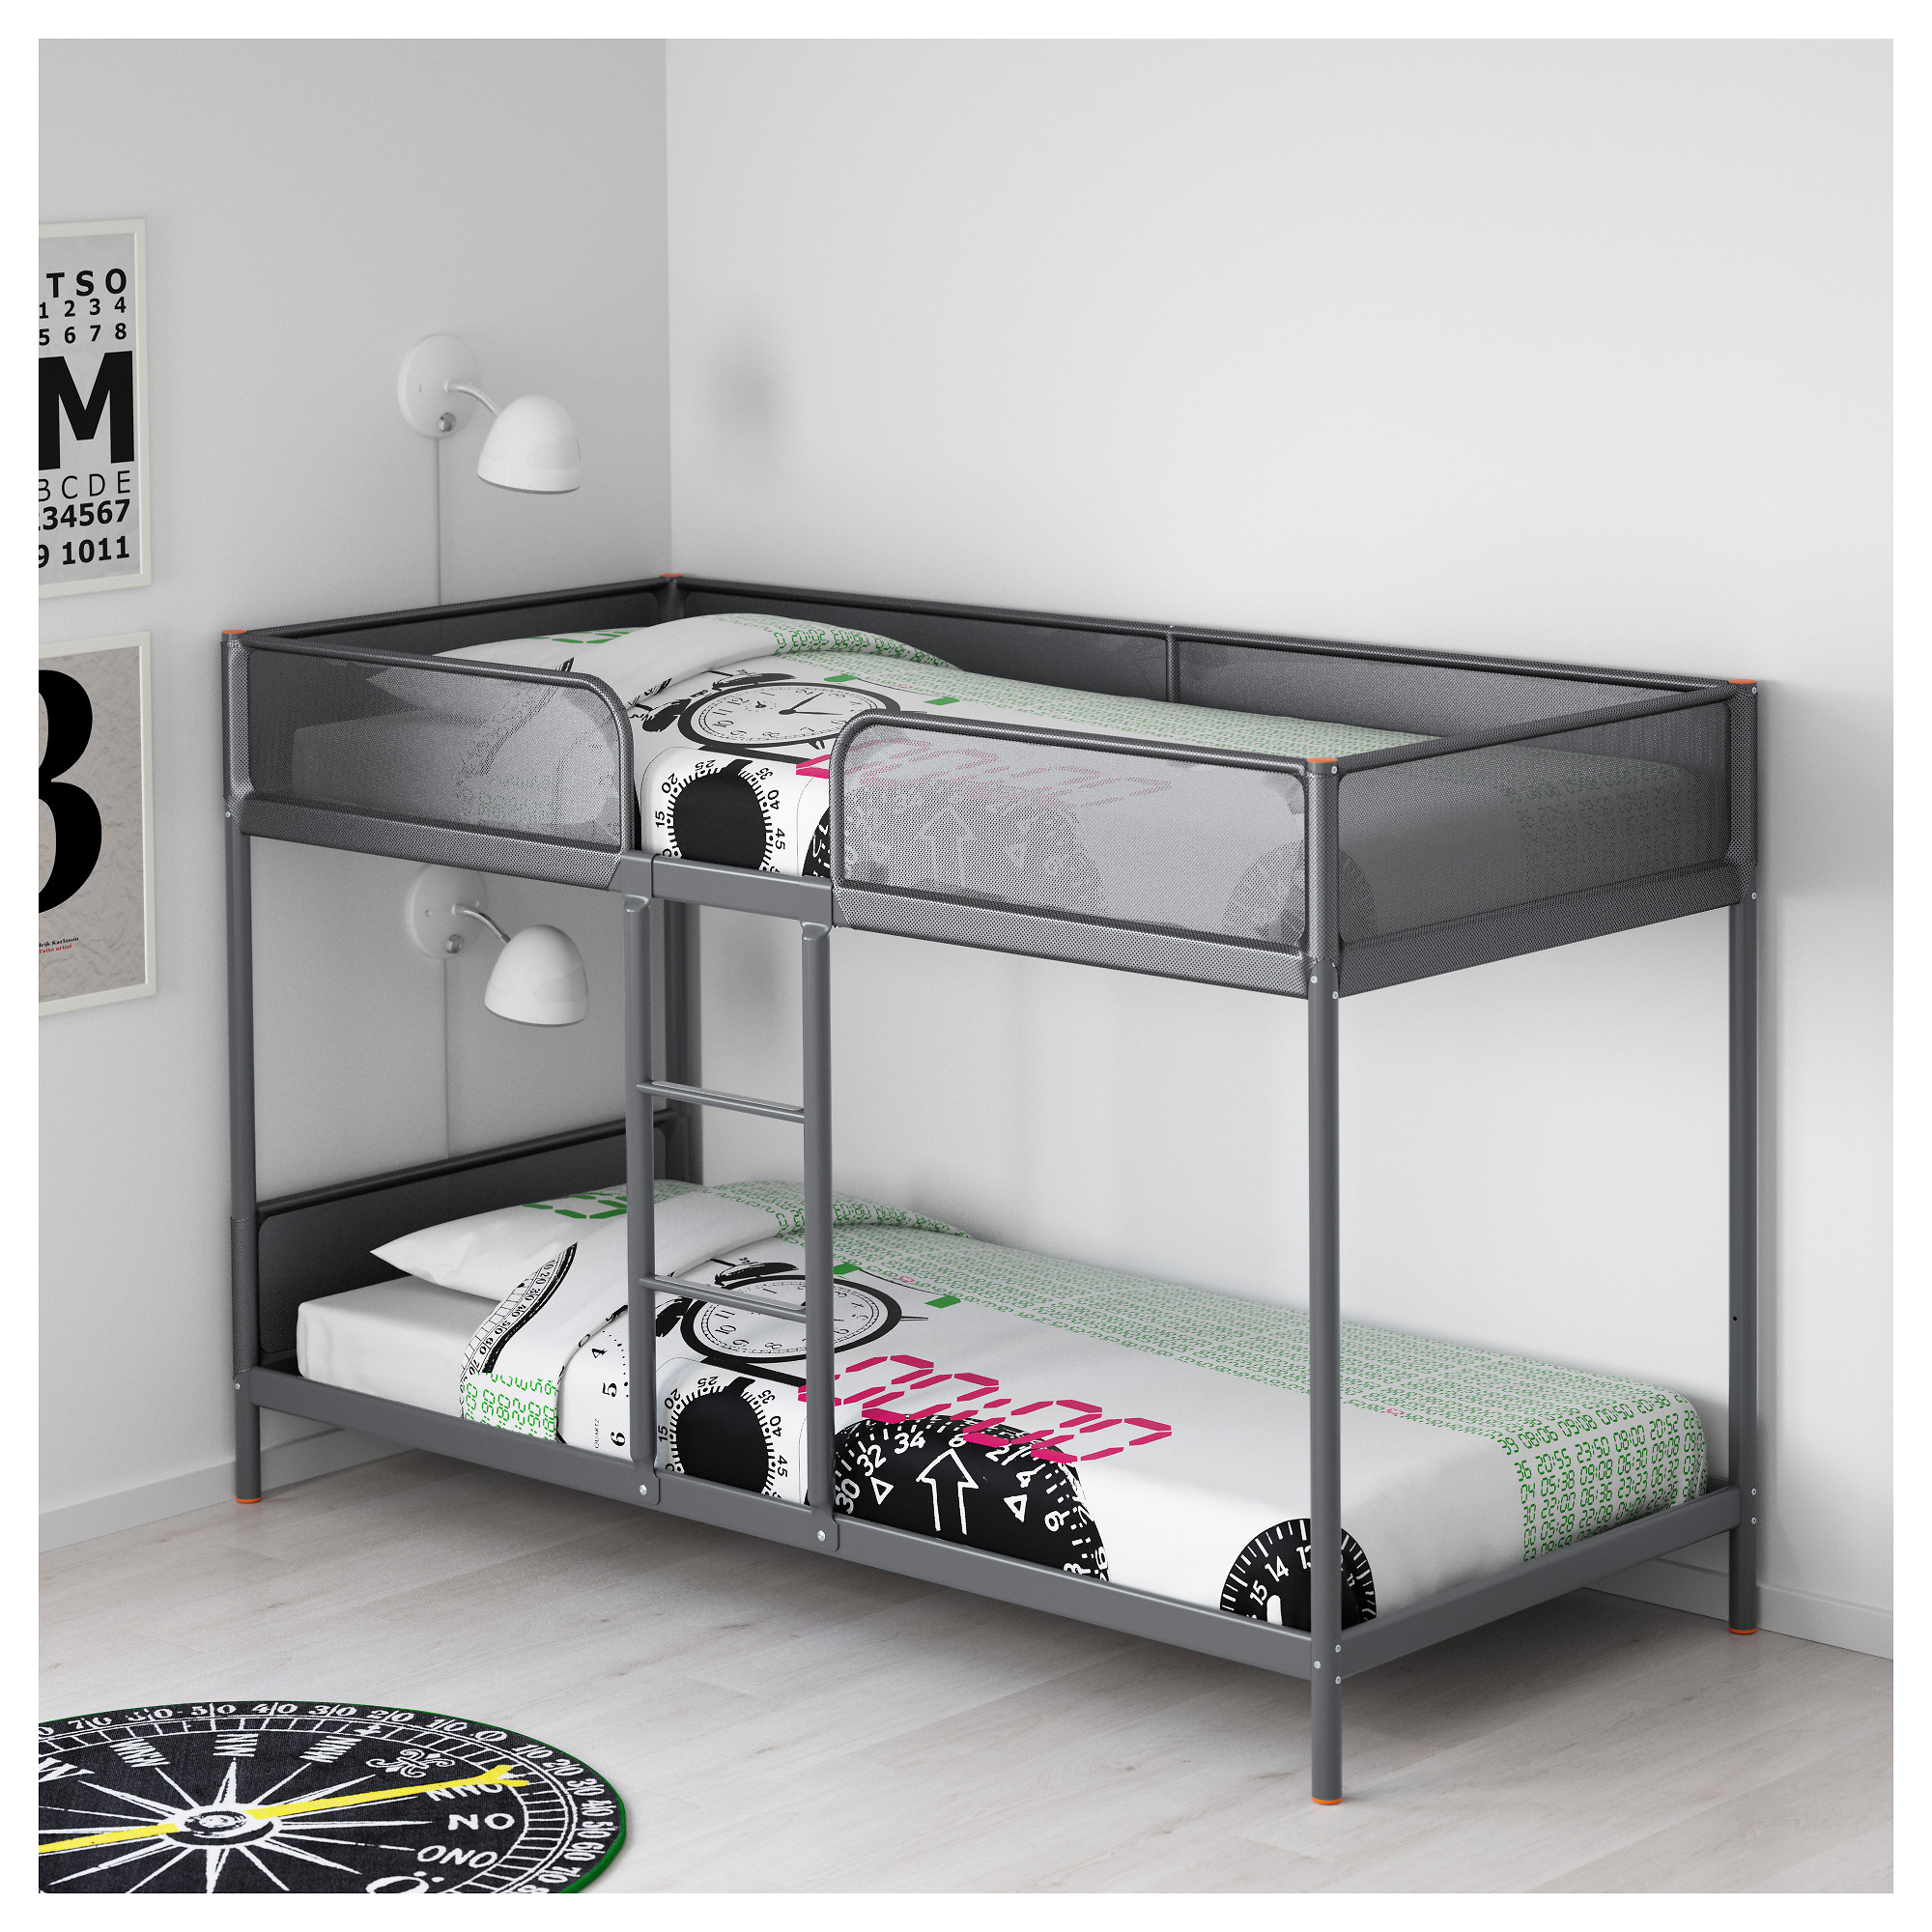 Bunk beds for kids ikea - Bunk Beds For Kids Ikea 58